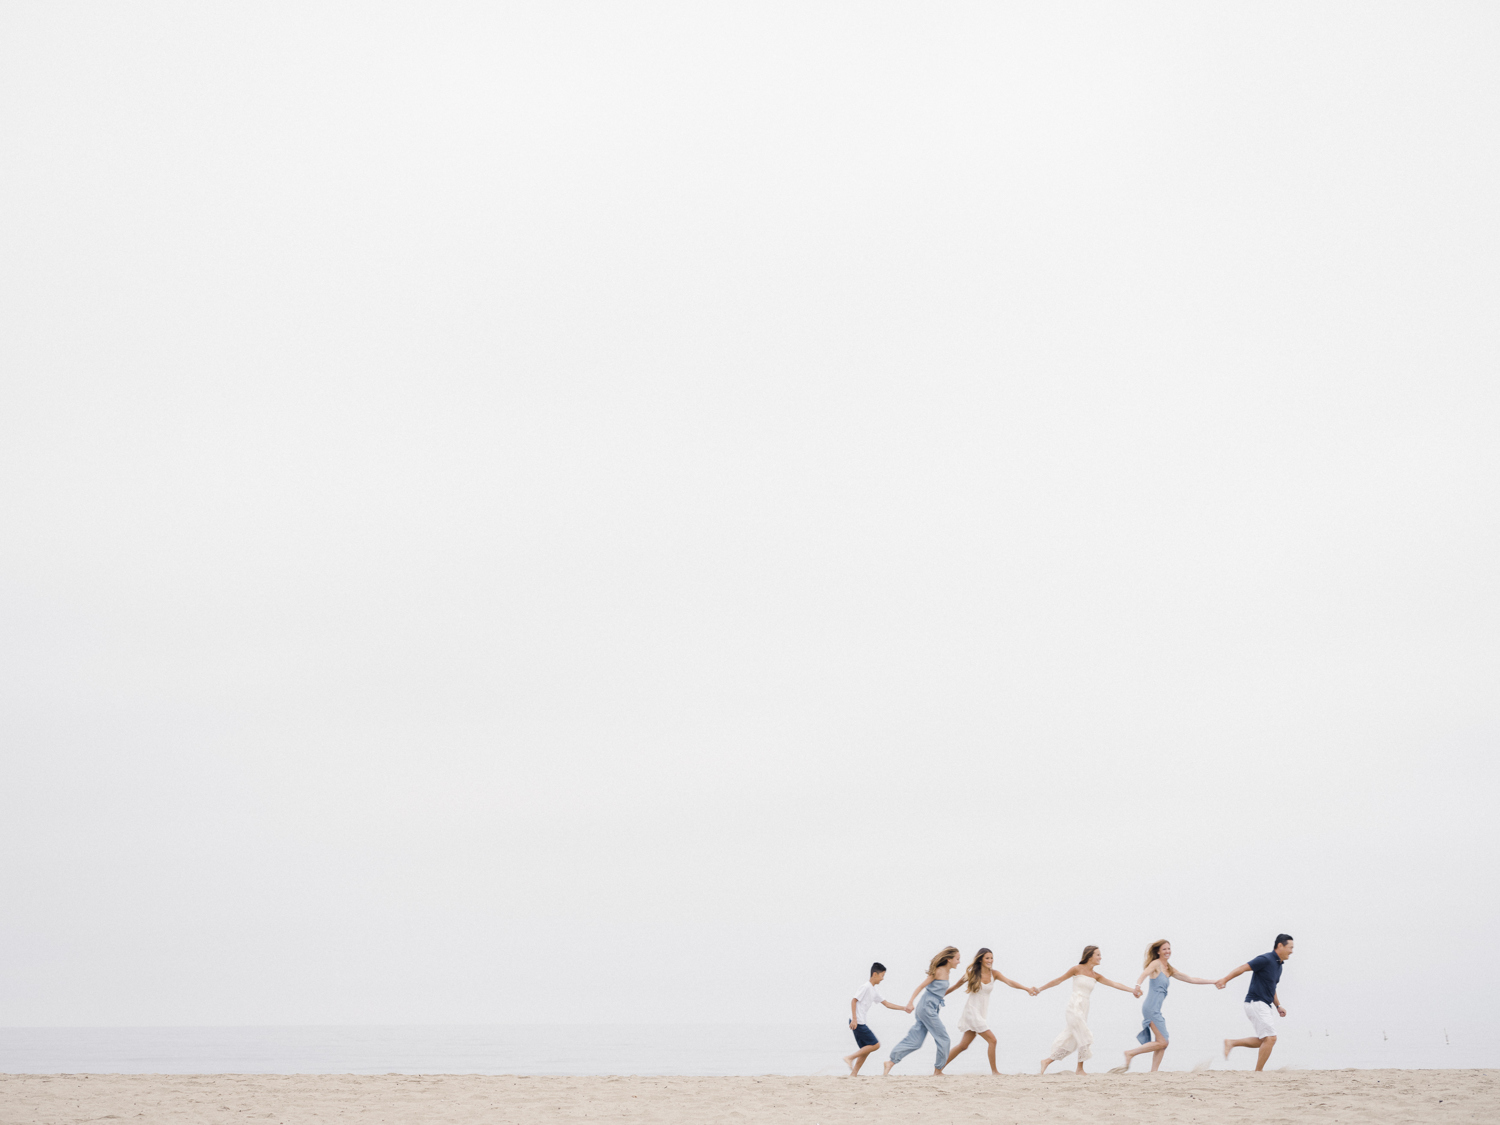 Photo of family holding hands in a single file line running on the beach together